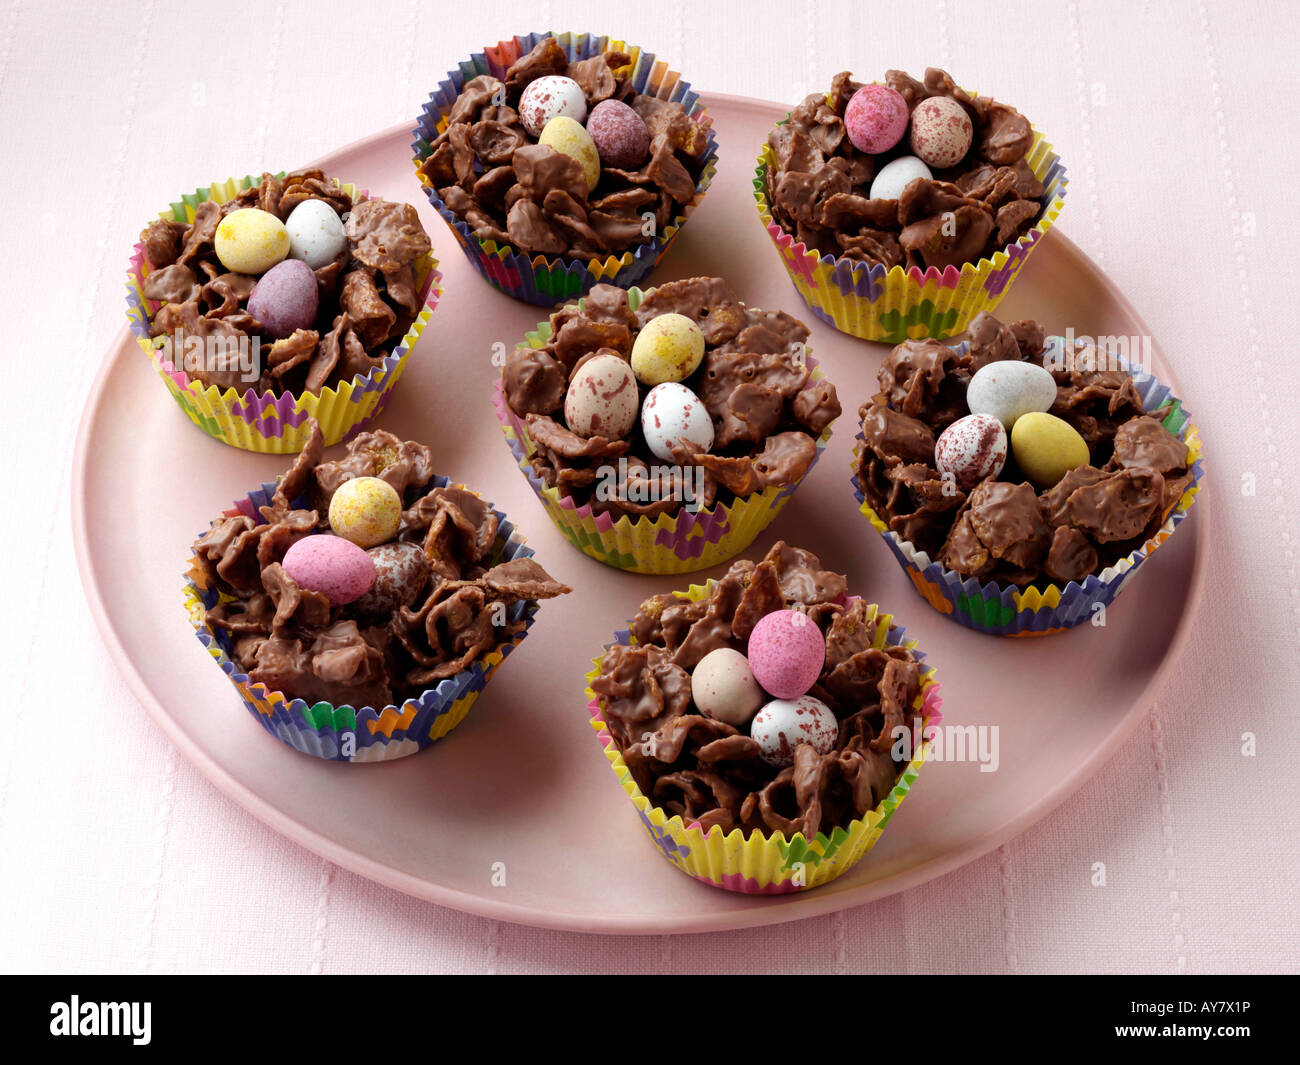 Chocolate Easter nests sweets editorial food Stock Photo